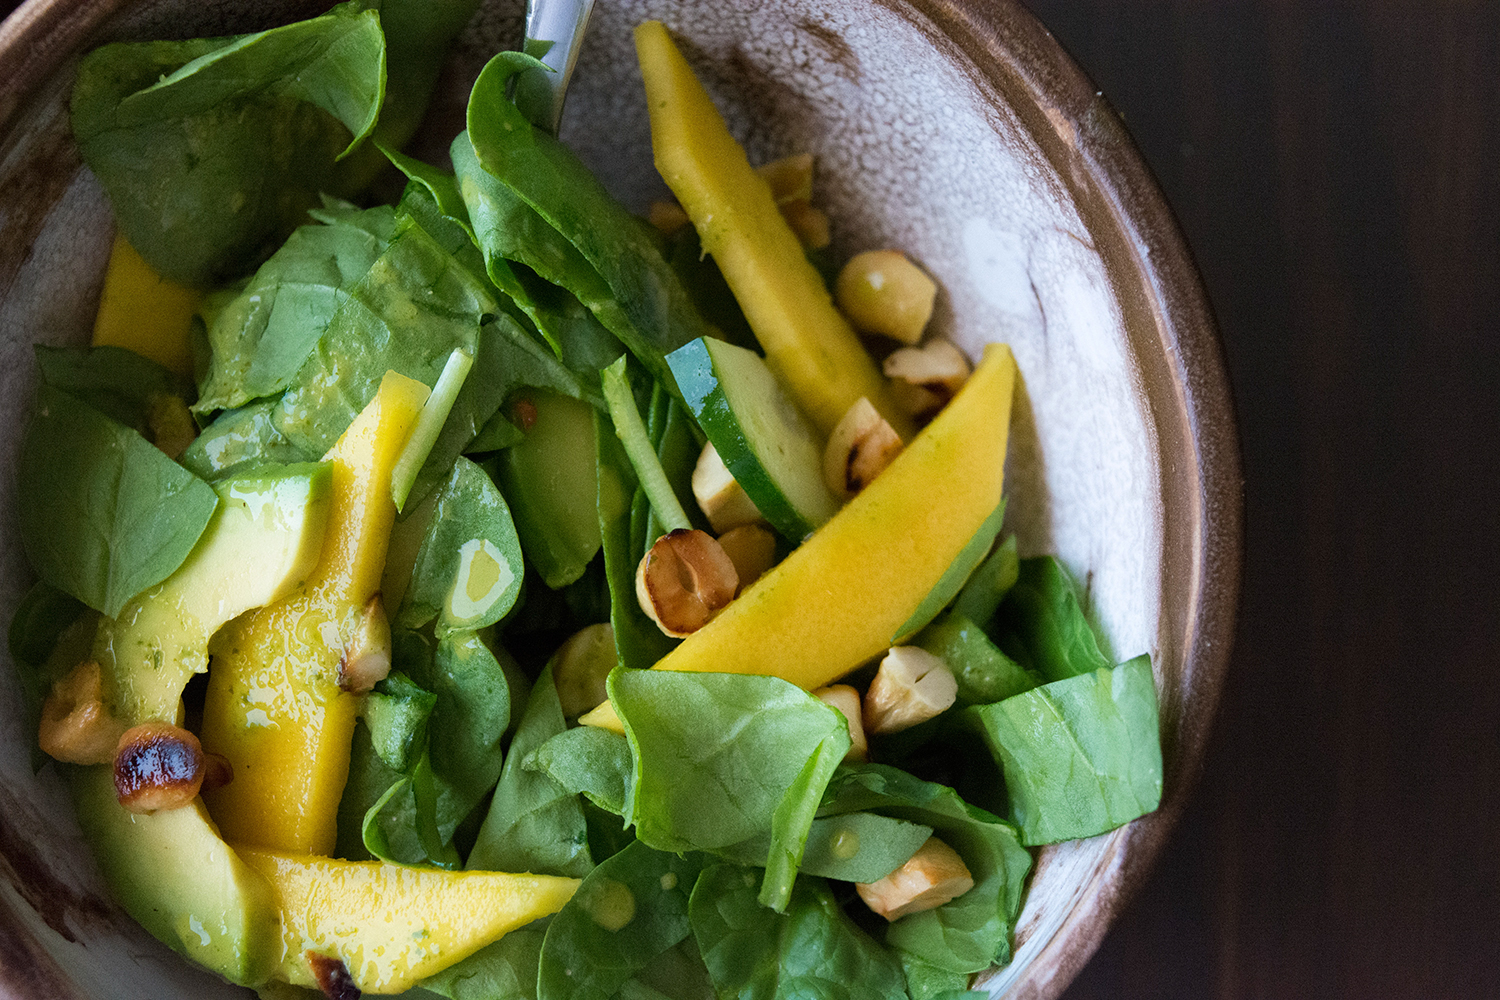 Spinach Salad with Mango & Avocado